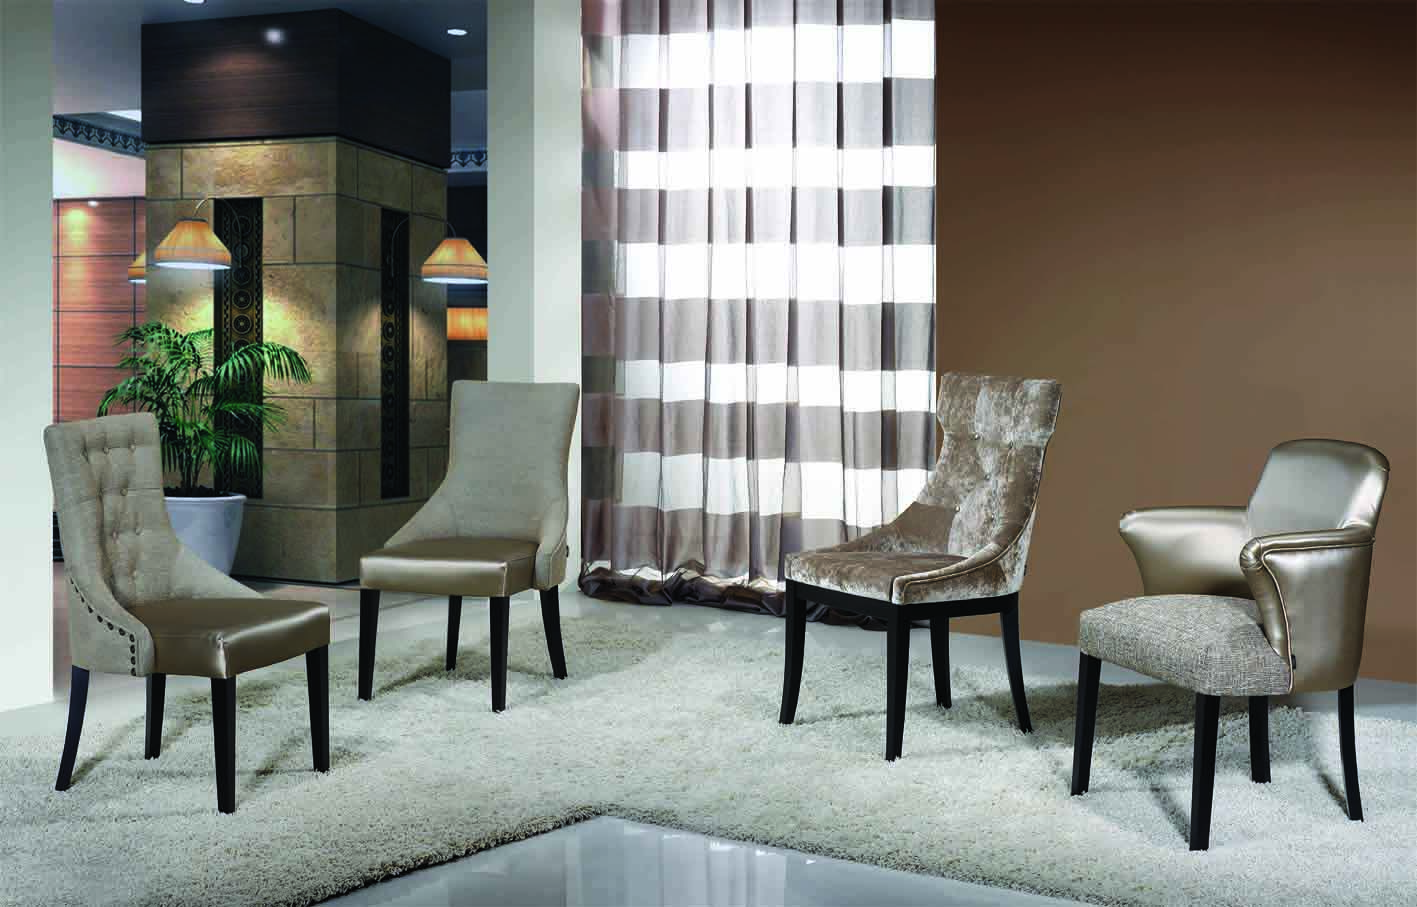 Ensuring a relaxing experience with specialist spa lounge